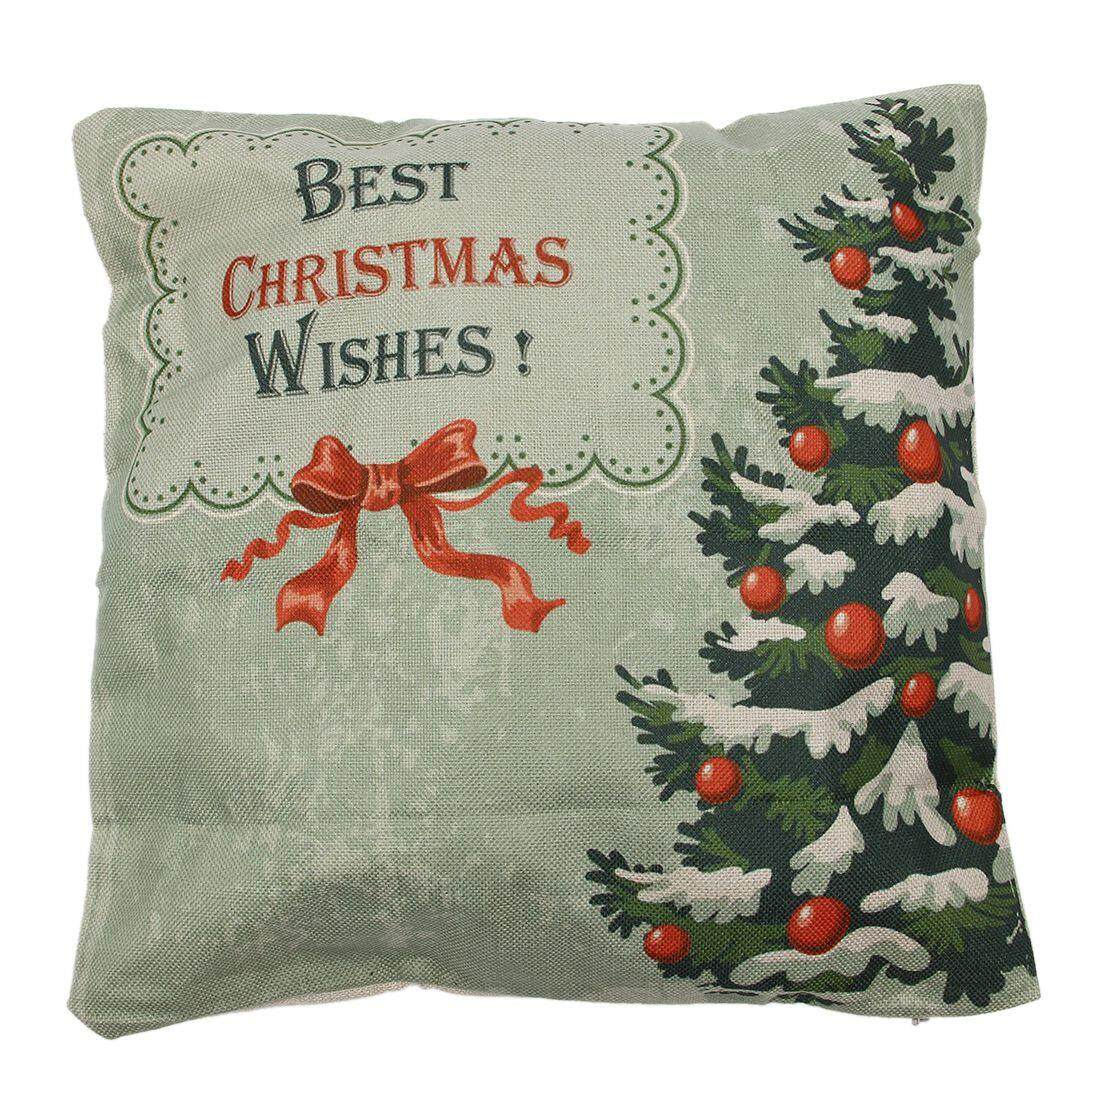 size decor pillow salechristmas sale home unique tar christmas for decorative barn walmart full furniture on pottery and of best idea pillows christmaspillow